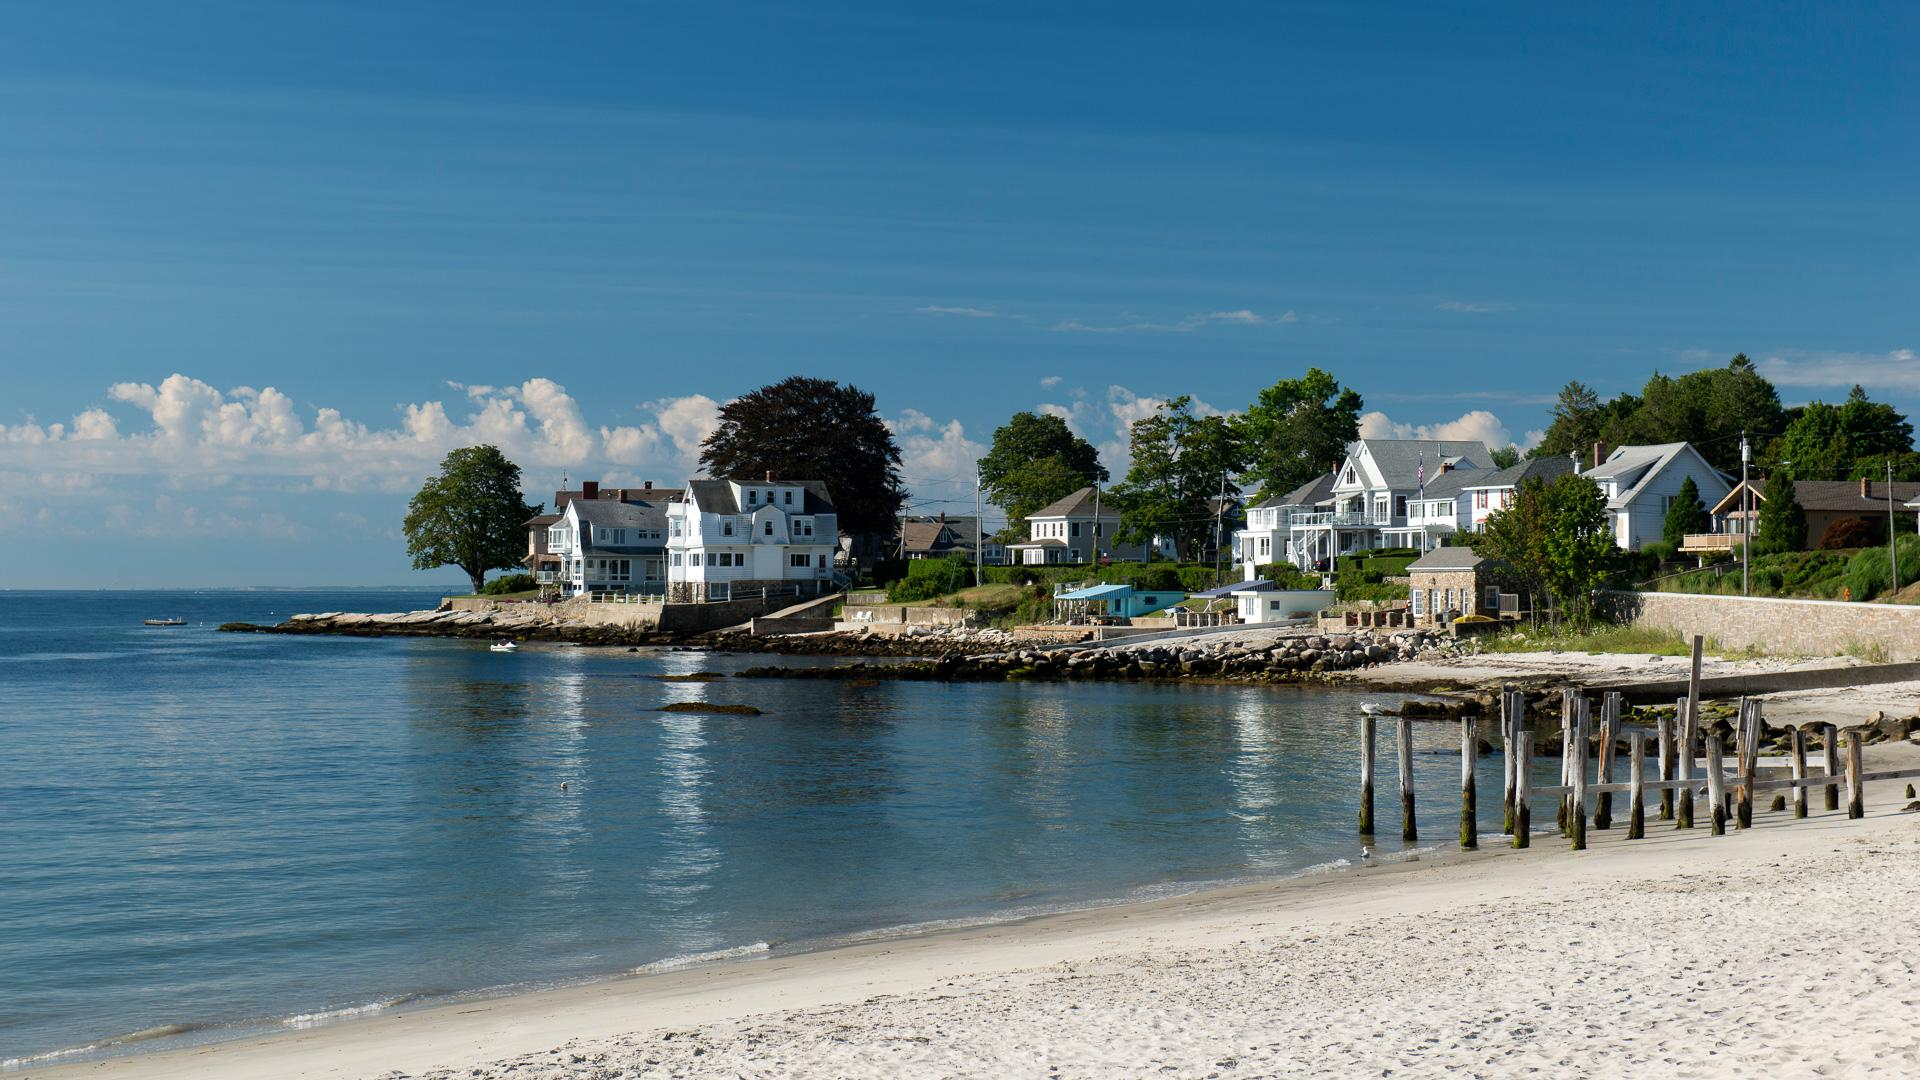 Waterfront houses with scenic harbor view in New London, Connecticut.